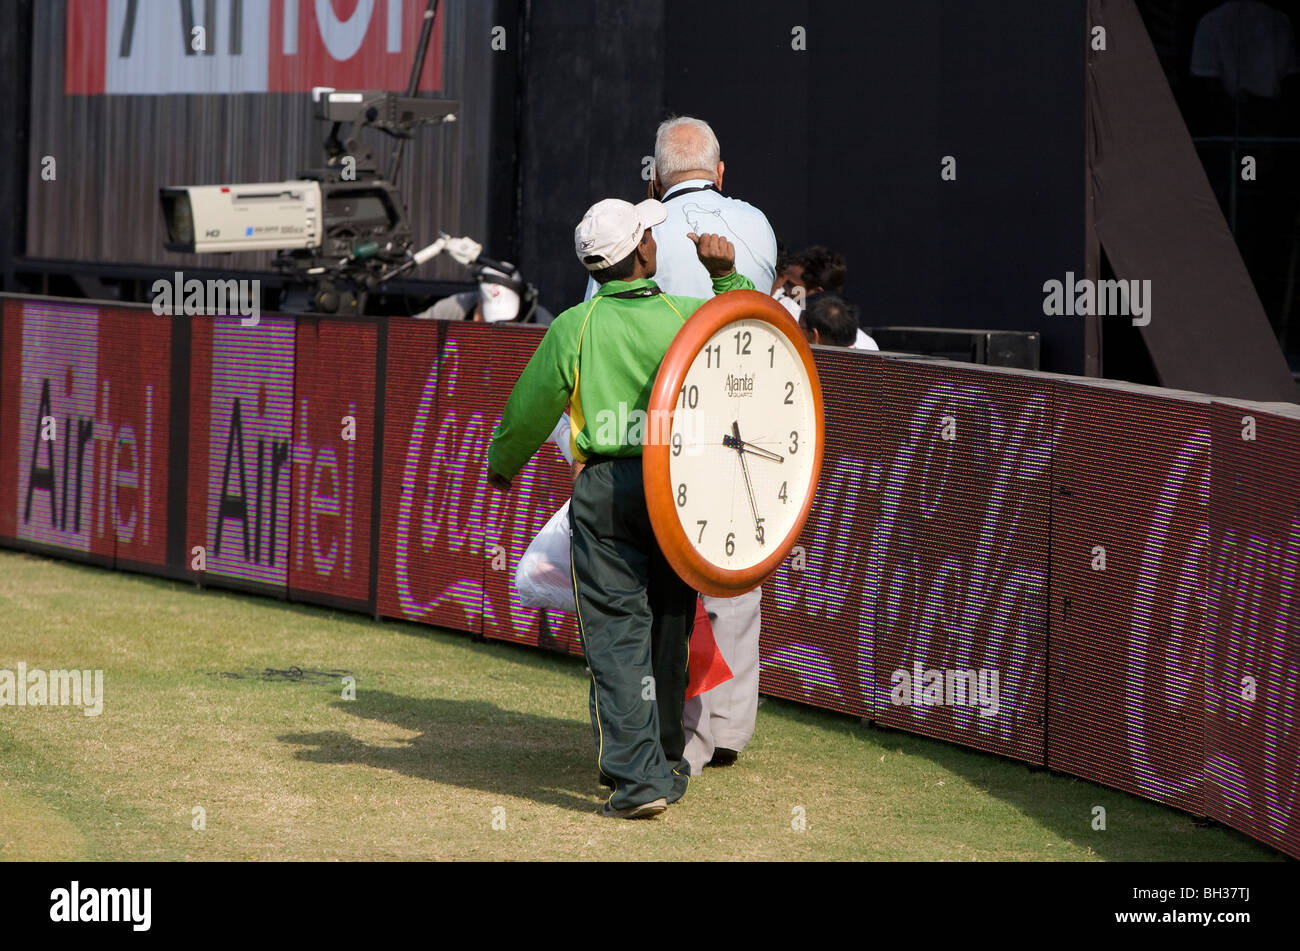 An Indian man carries a large clock around the outfield of the Kotla Stadium in New Delhi, India. Picture by James - Stock Image